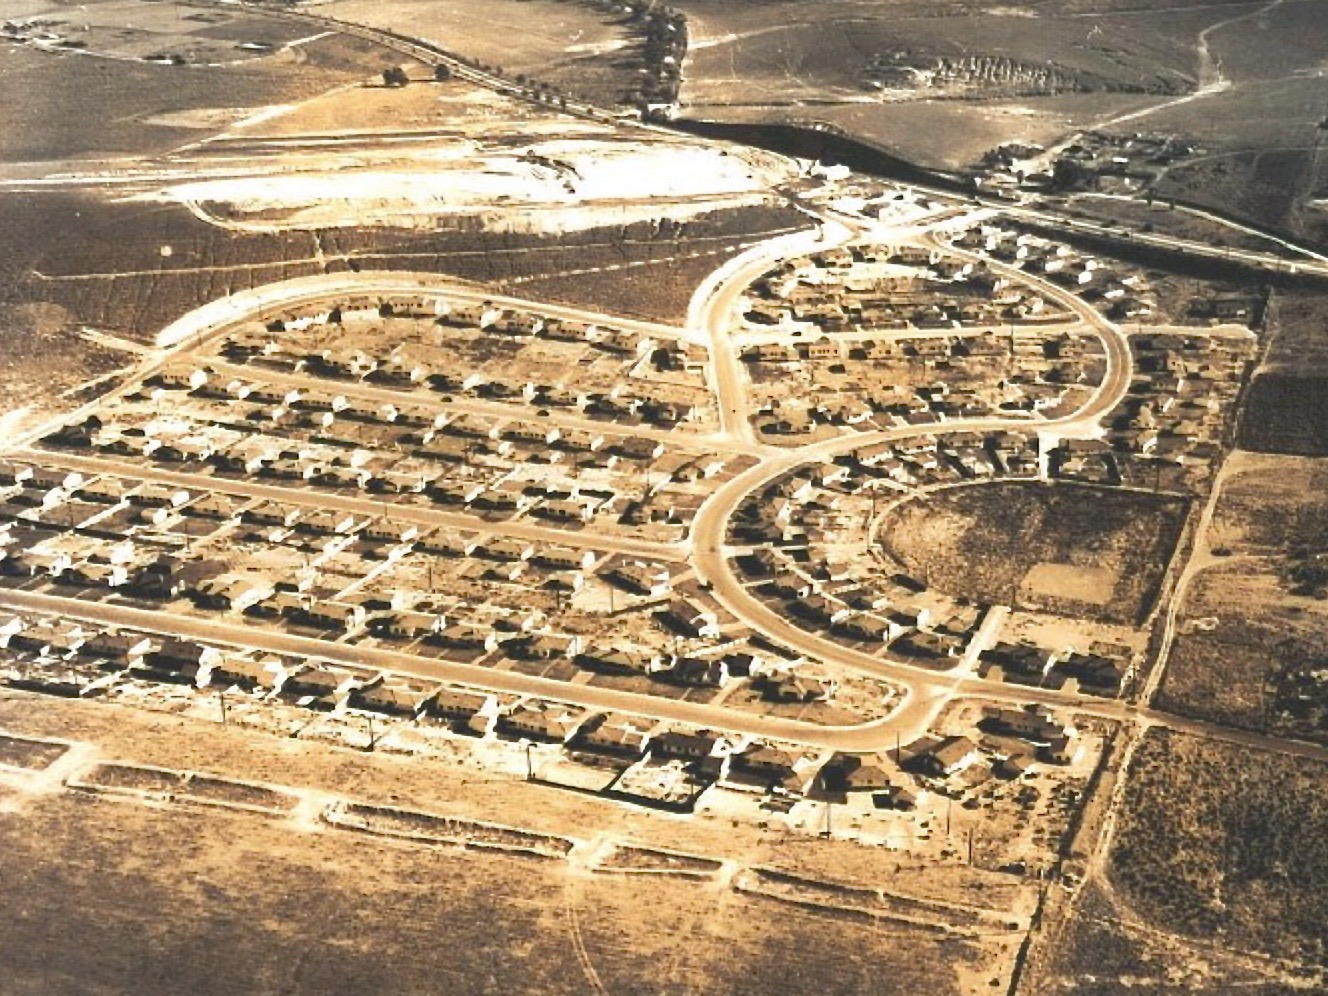 Seaside Ranchos circa 1949